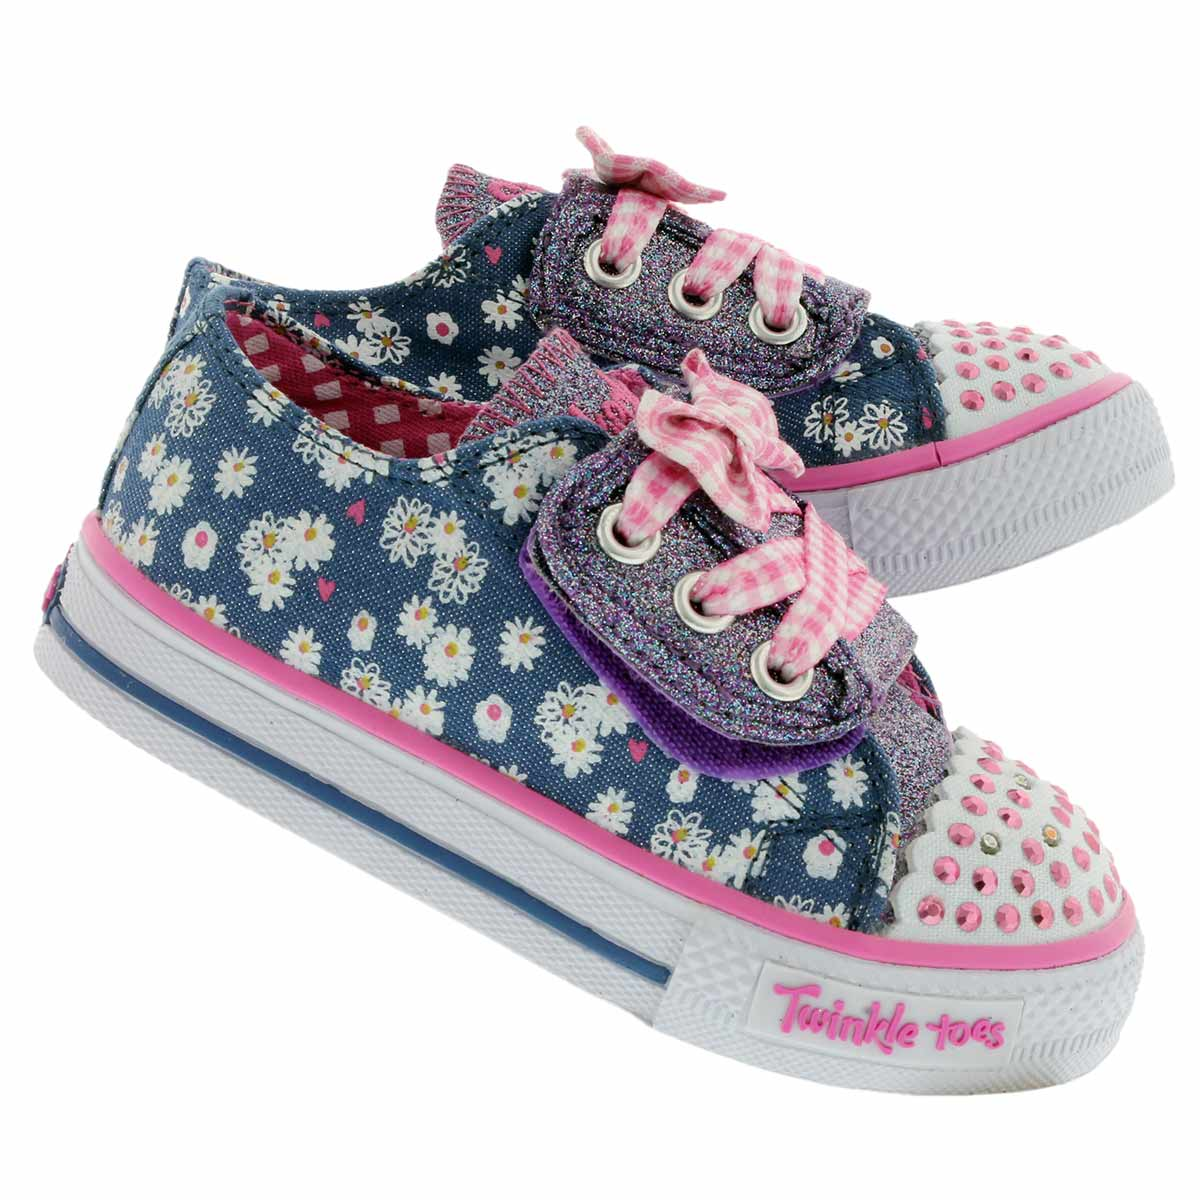 Infs Daisy Dot denim/multi sneaker